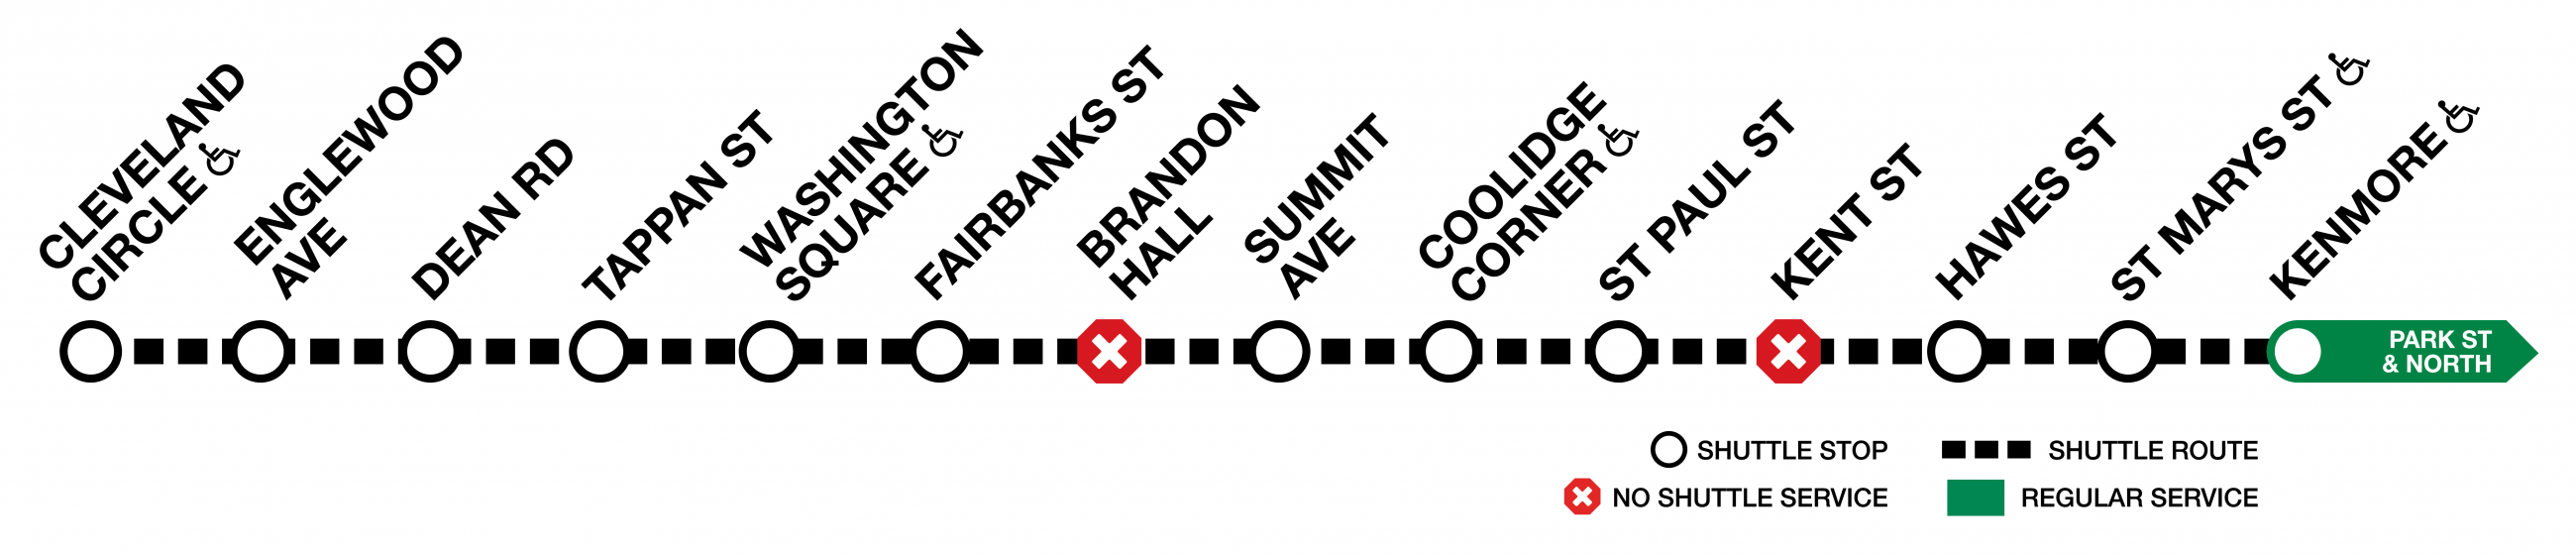 Graphic showing the Green Line, with bus shuttles running between Cleveland Cirlce and Kenomre, with no shuttle service at Brandon Hall and Kent Street.